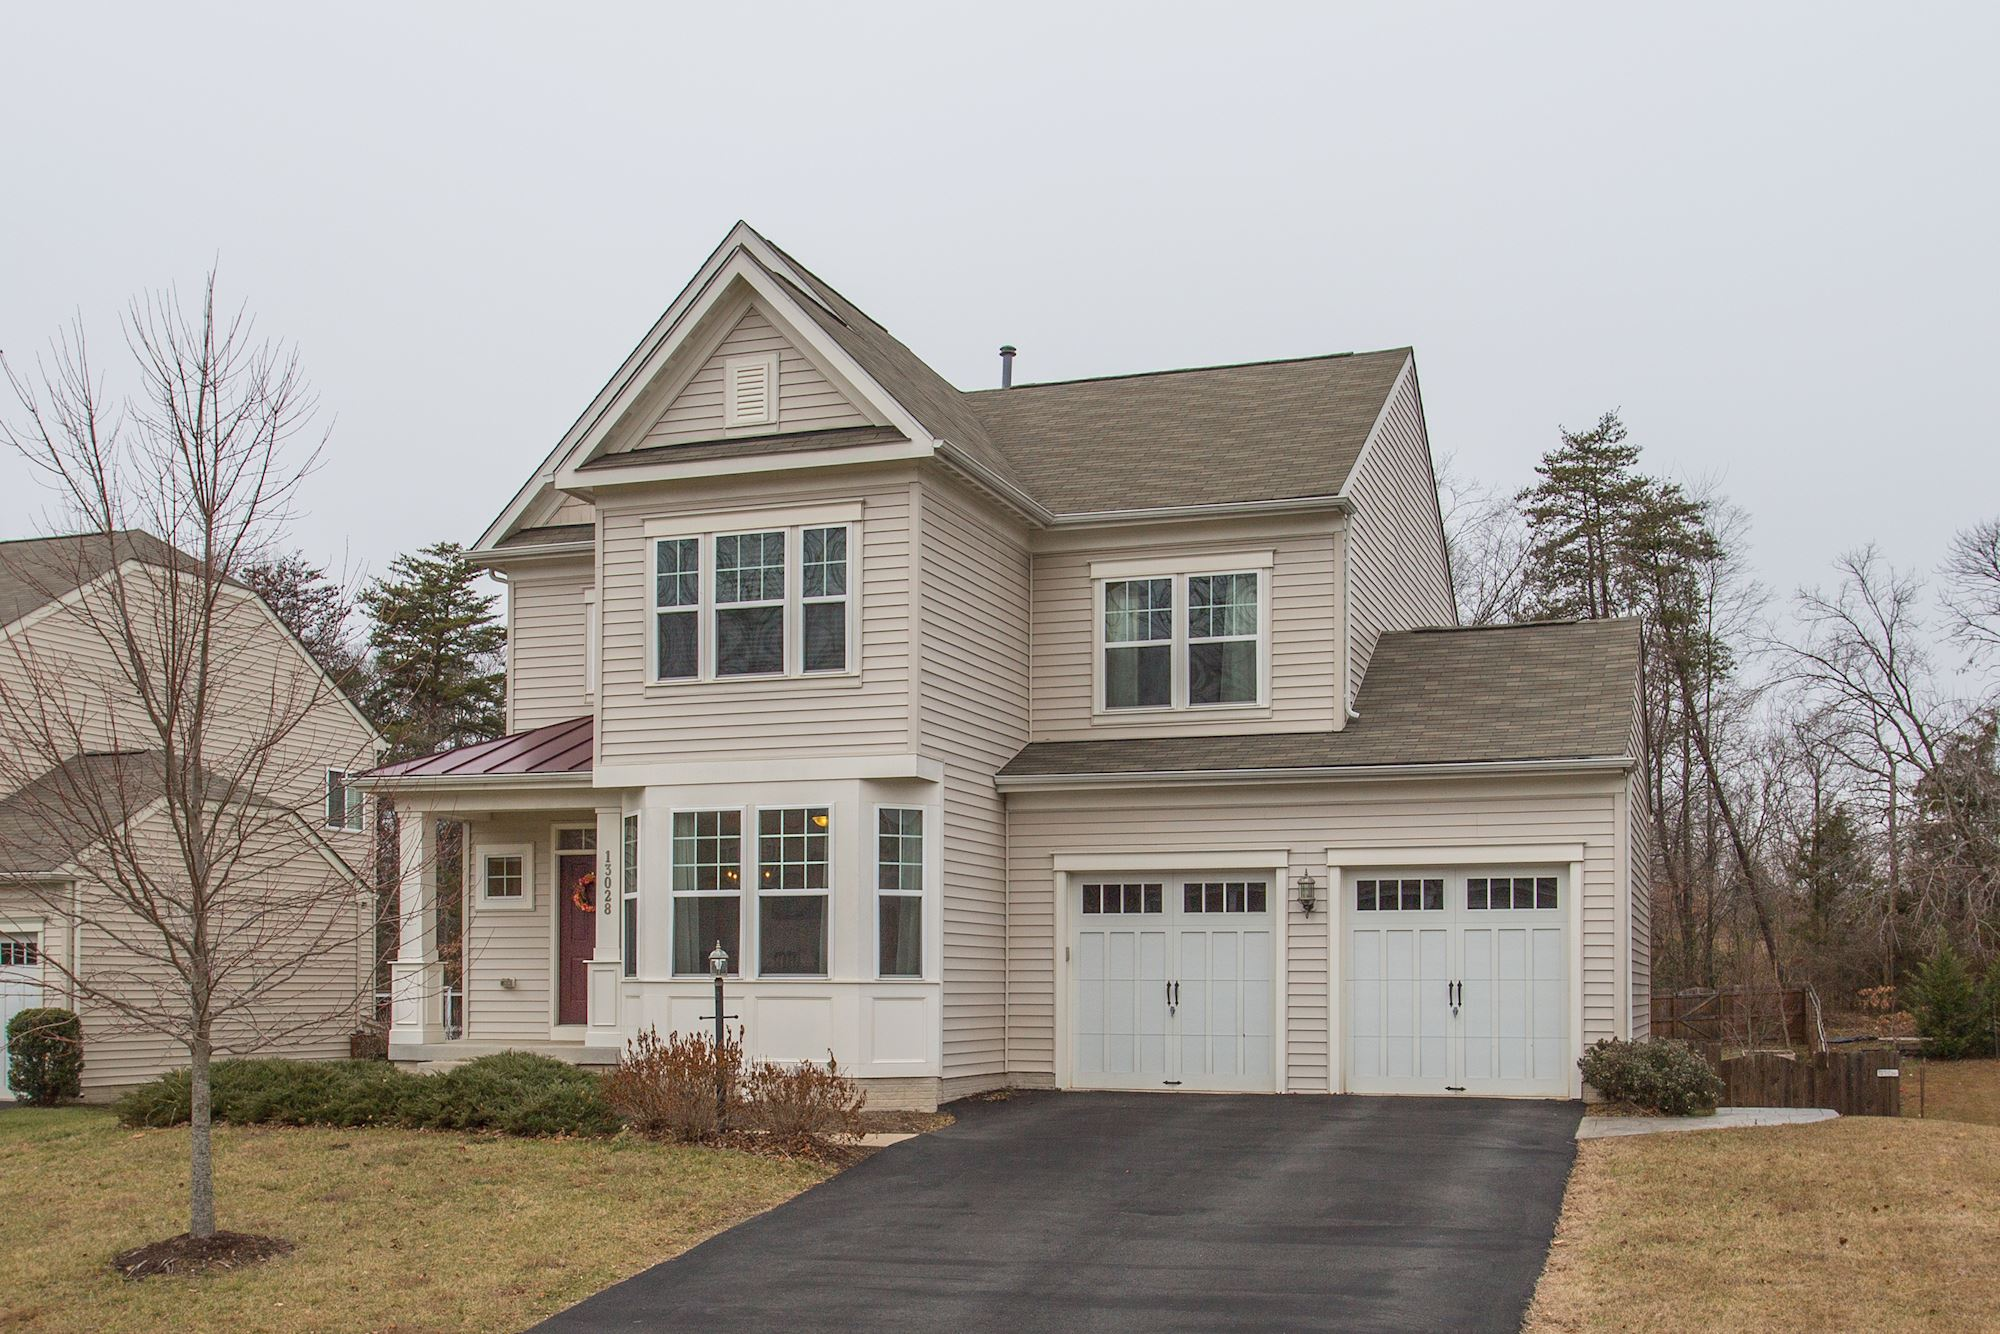 5 Beautiful Northern Virginia Homes Sold In The Last 60 Days!